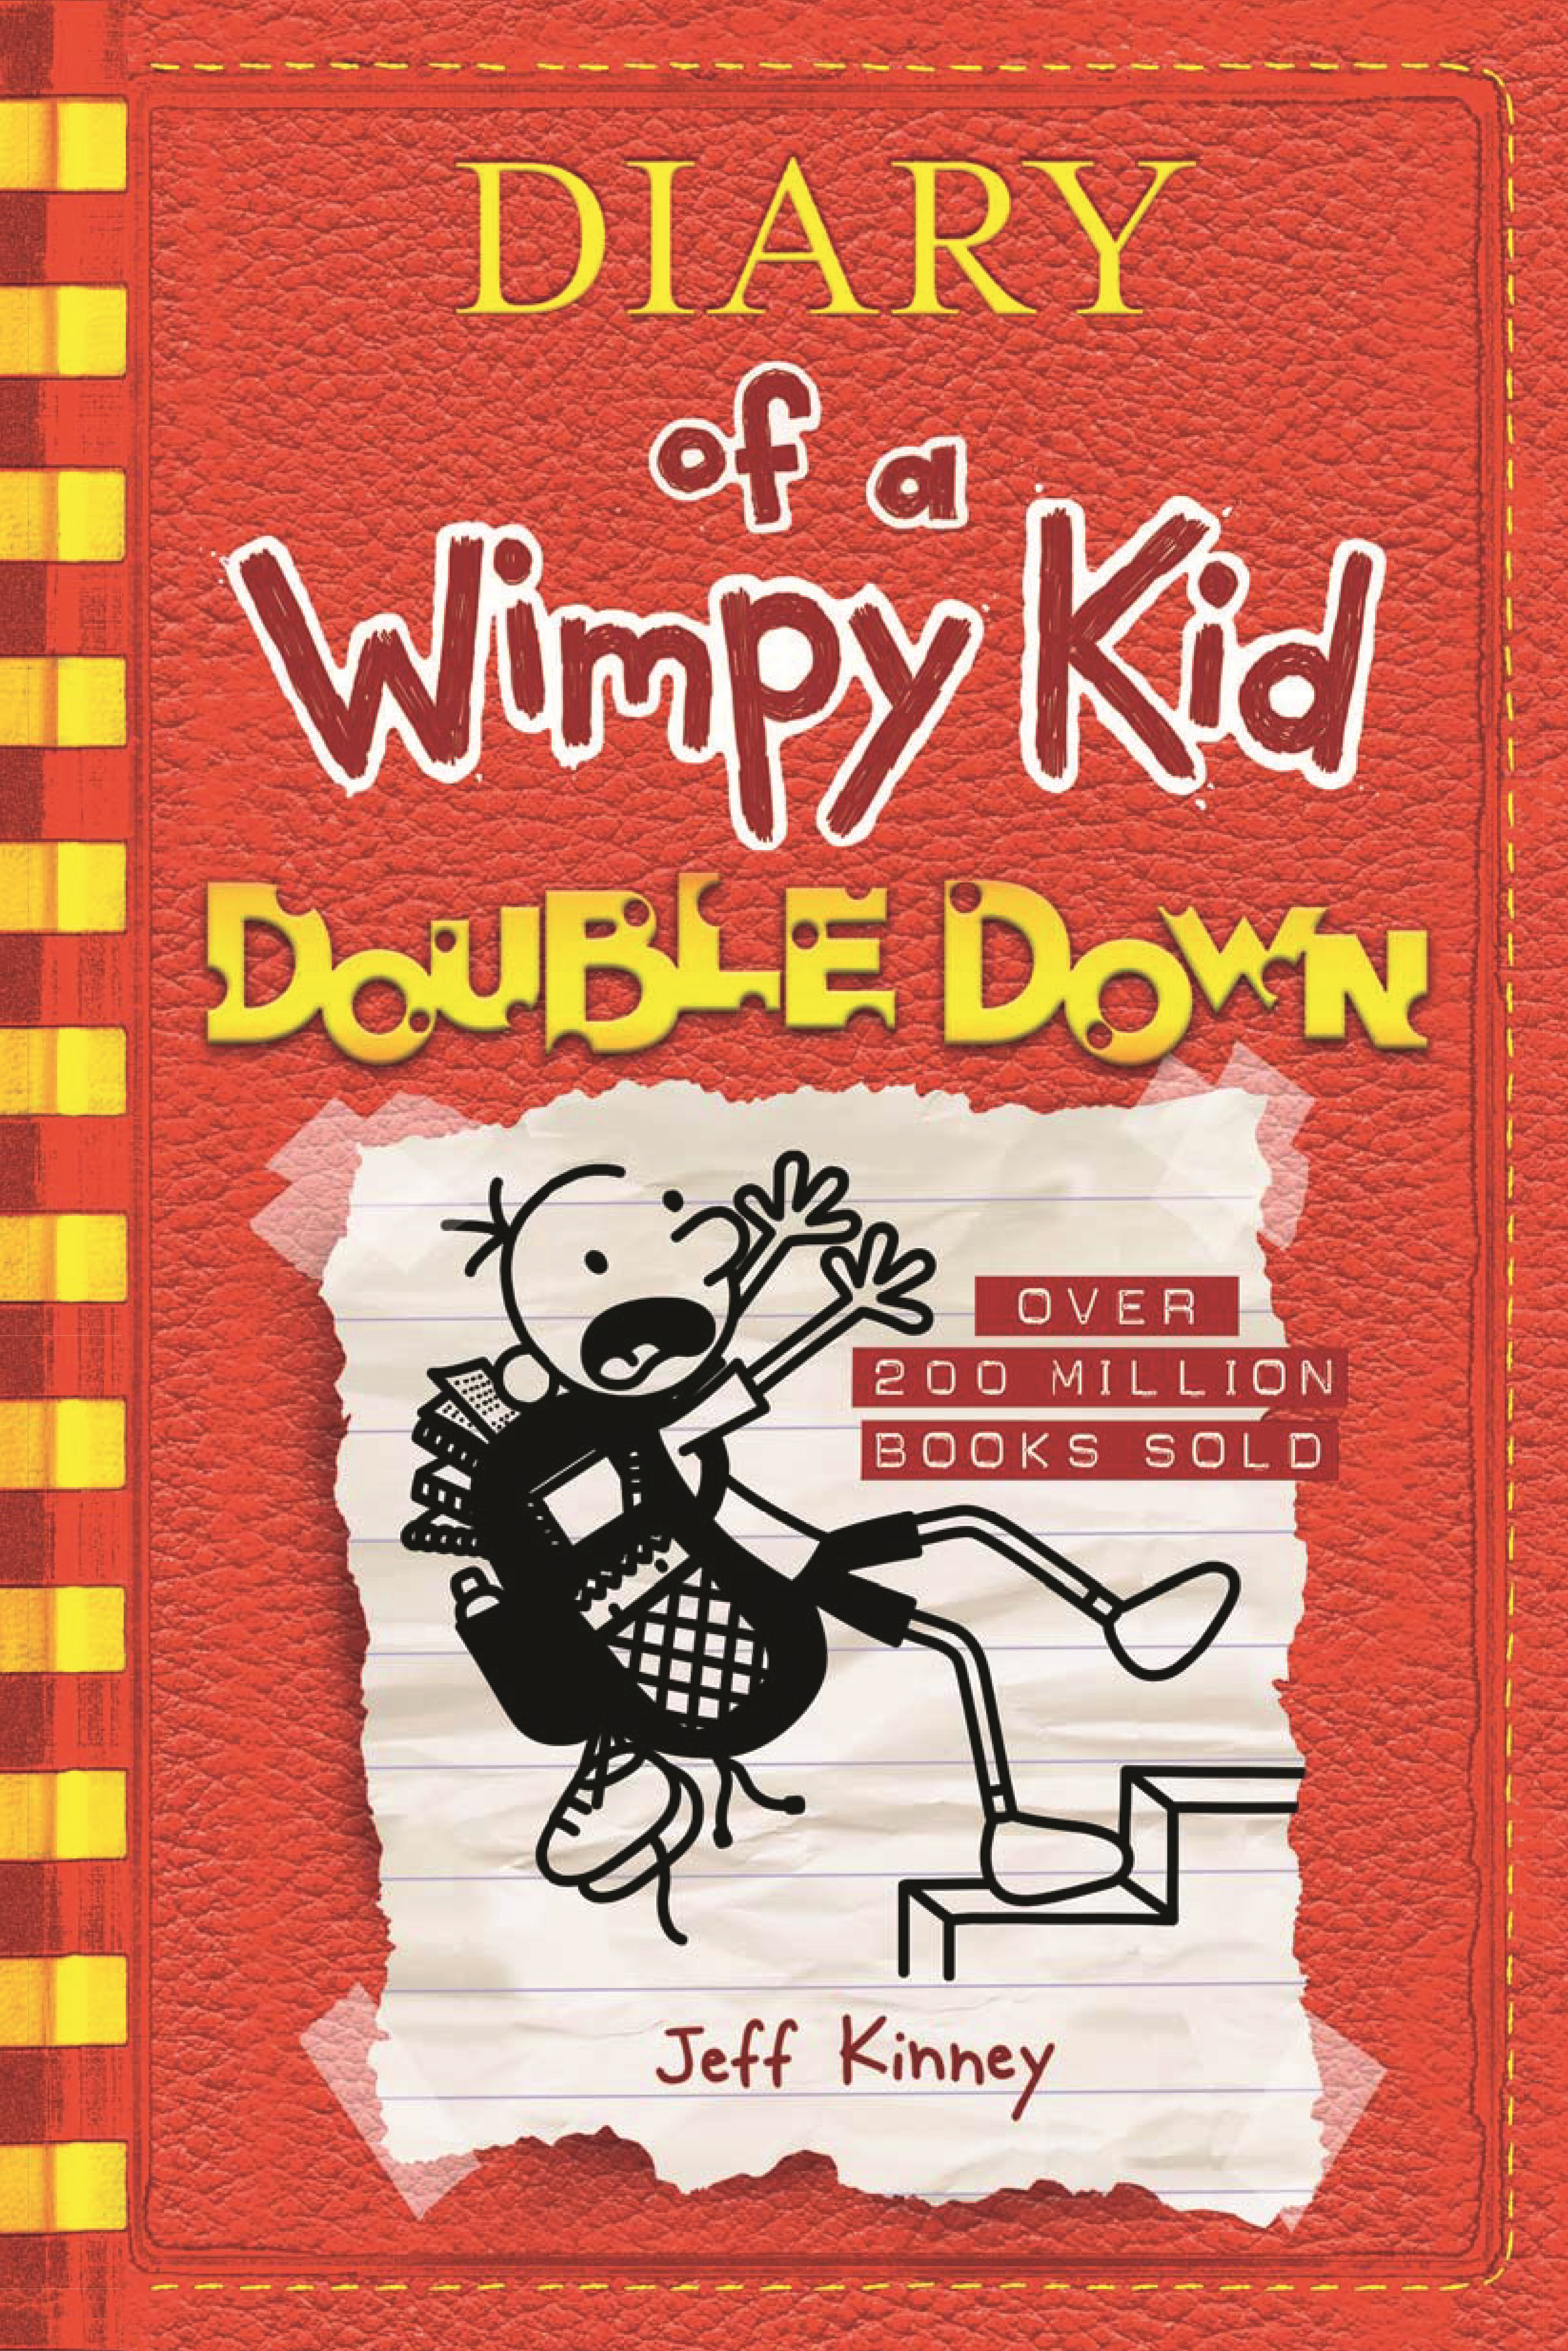 Diary of a Wimpy Kid : Double DownDiary of a Wimpy Kid : Book 11